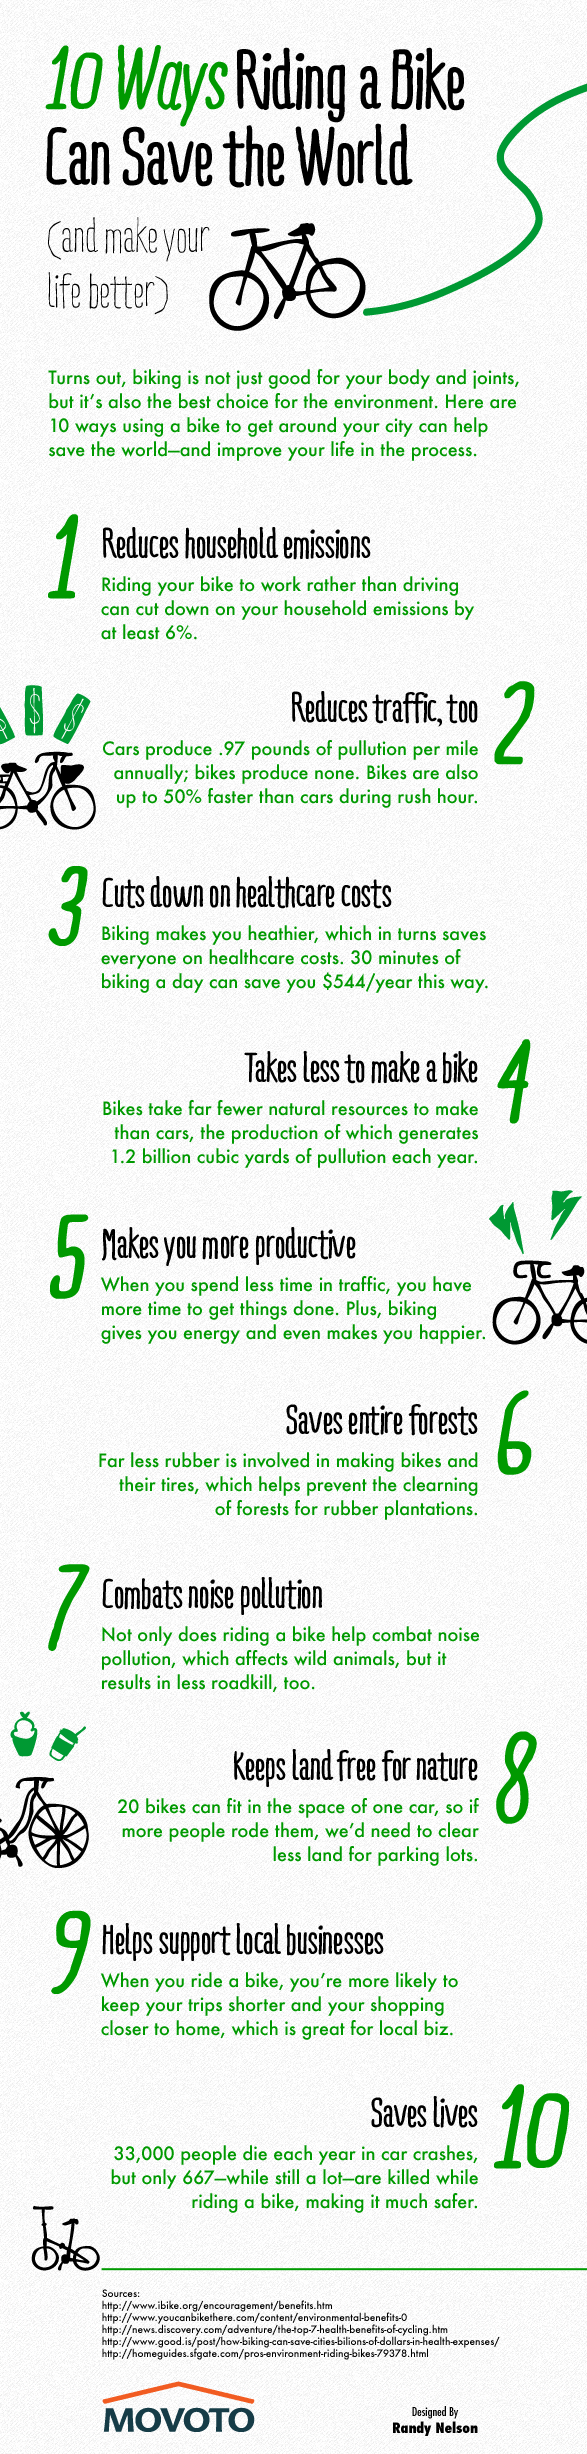 10 Ways Riding a Bike Can Save the World